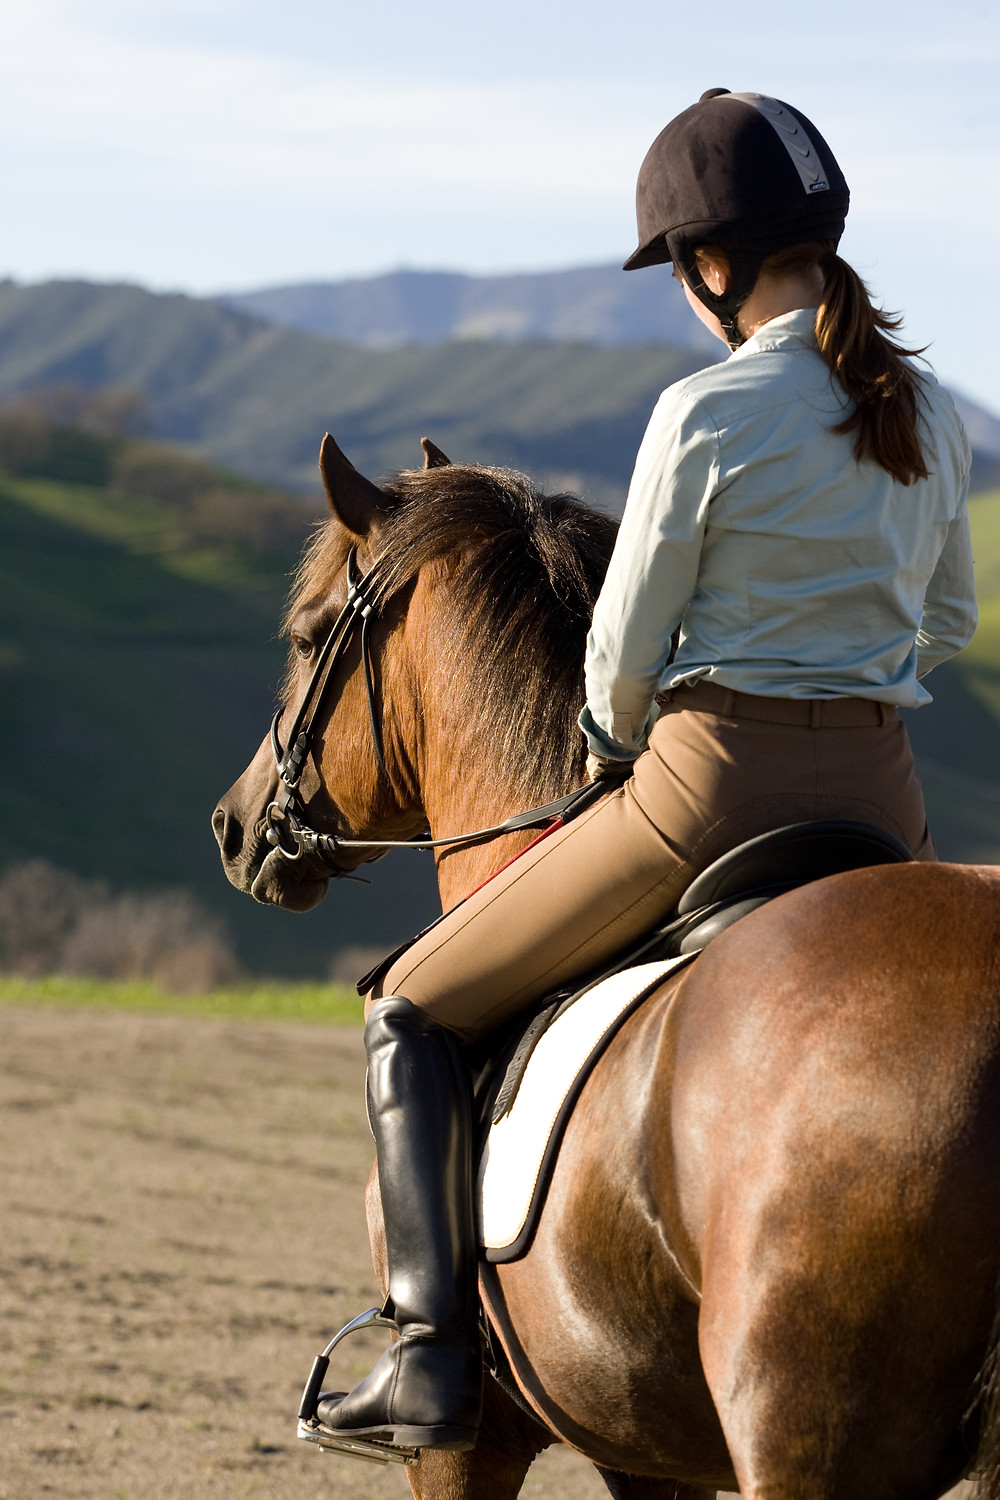 Make your horse a willing partner